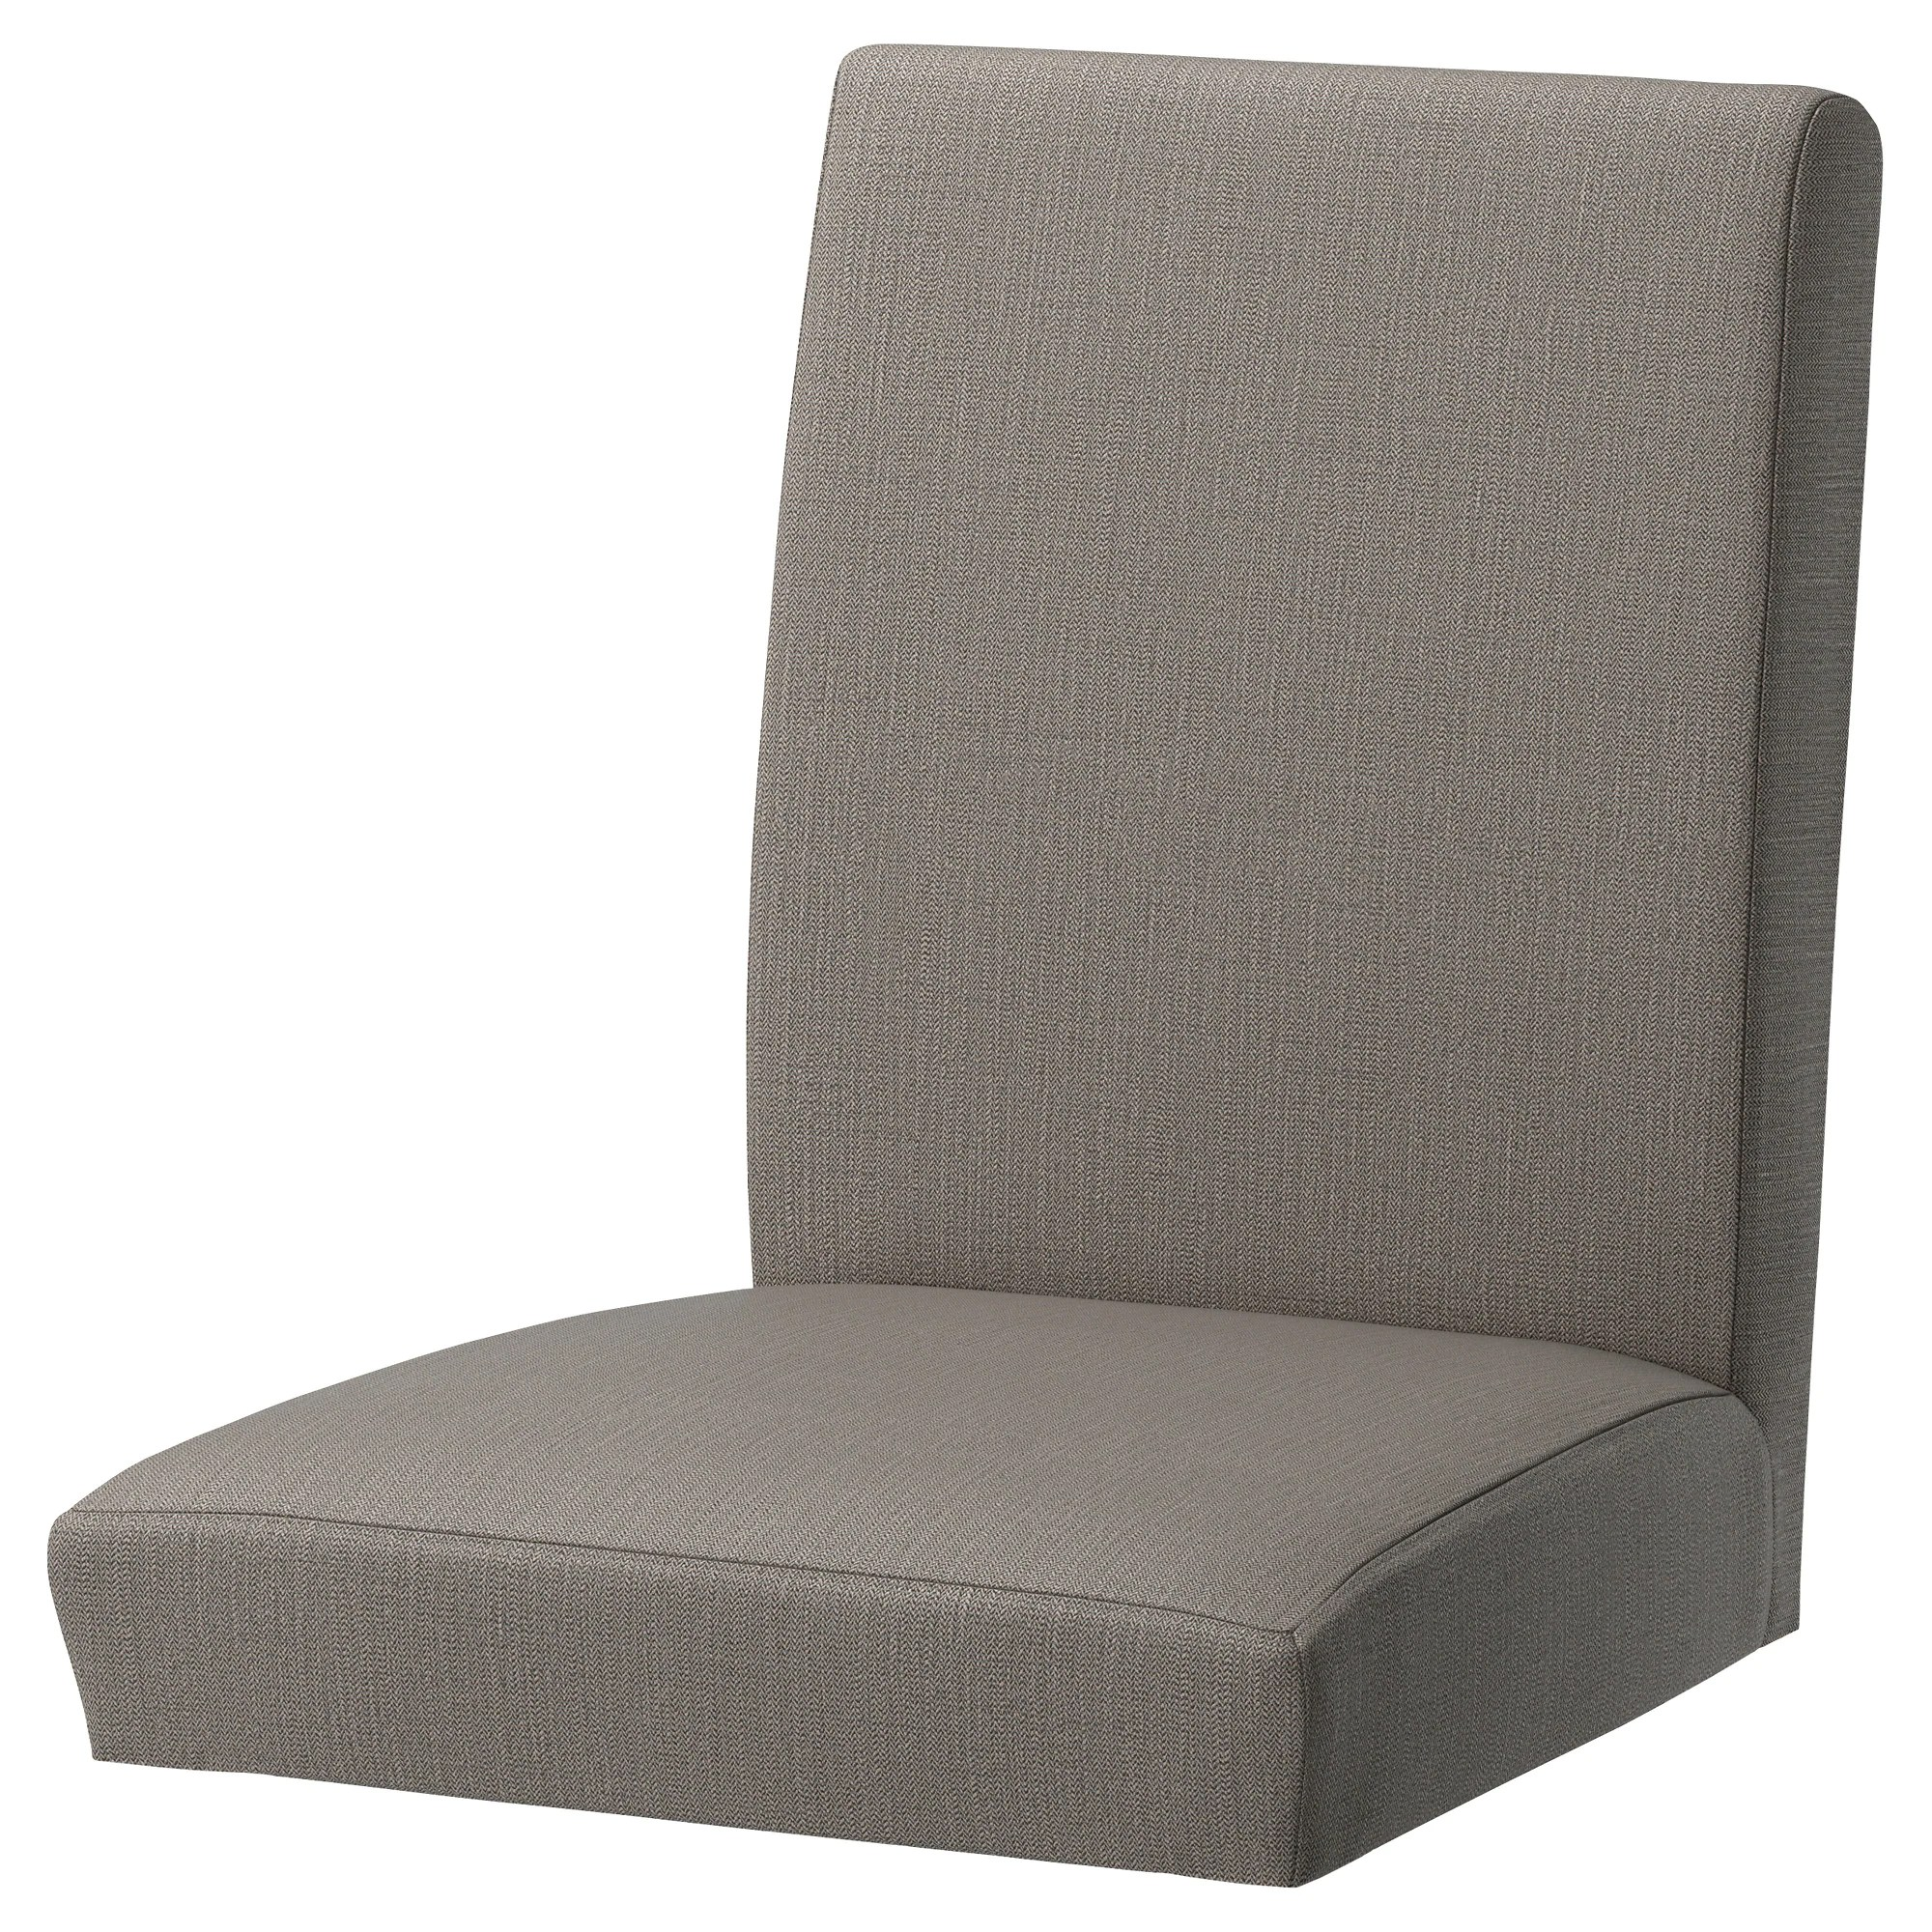 Chair Cover Henriksdal Chair Cover Nolhaga Gray Beige